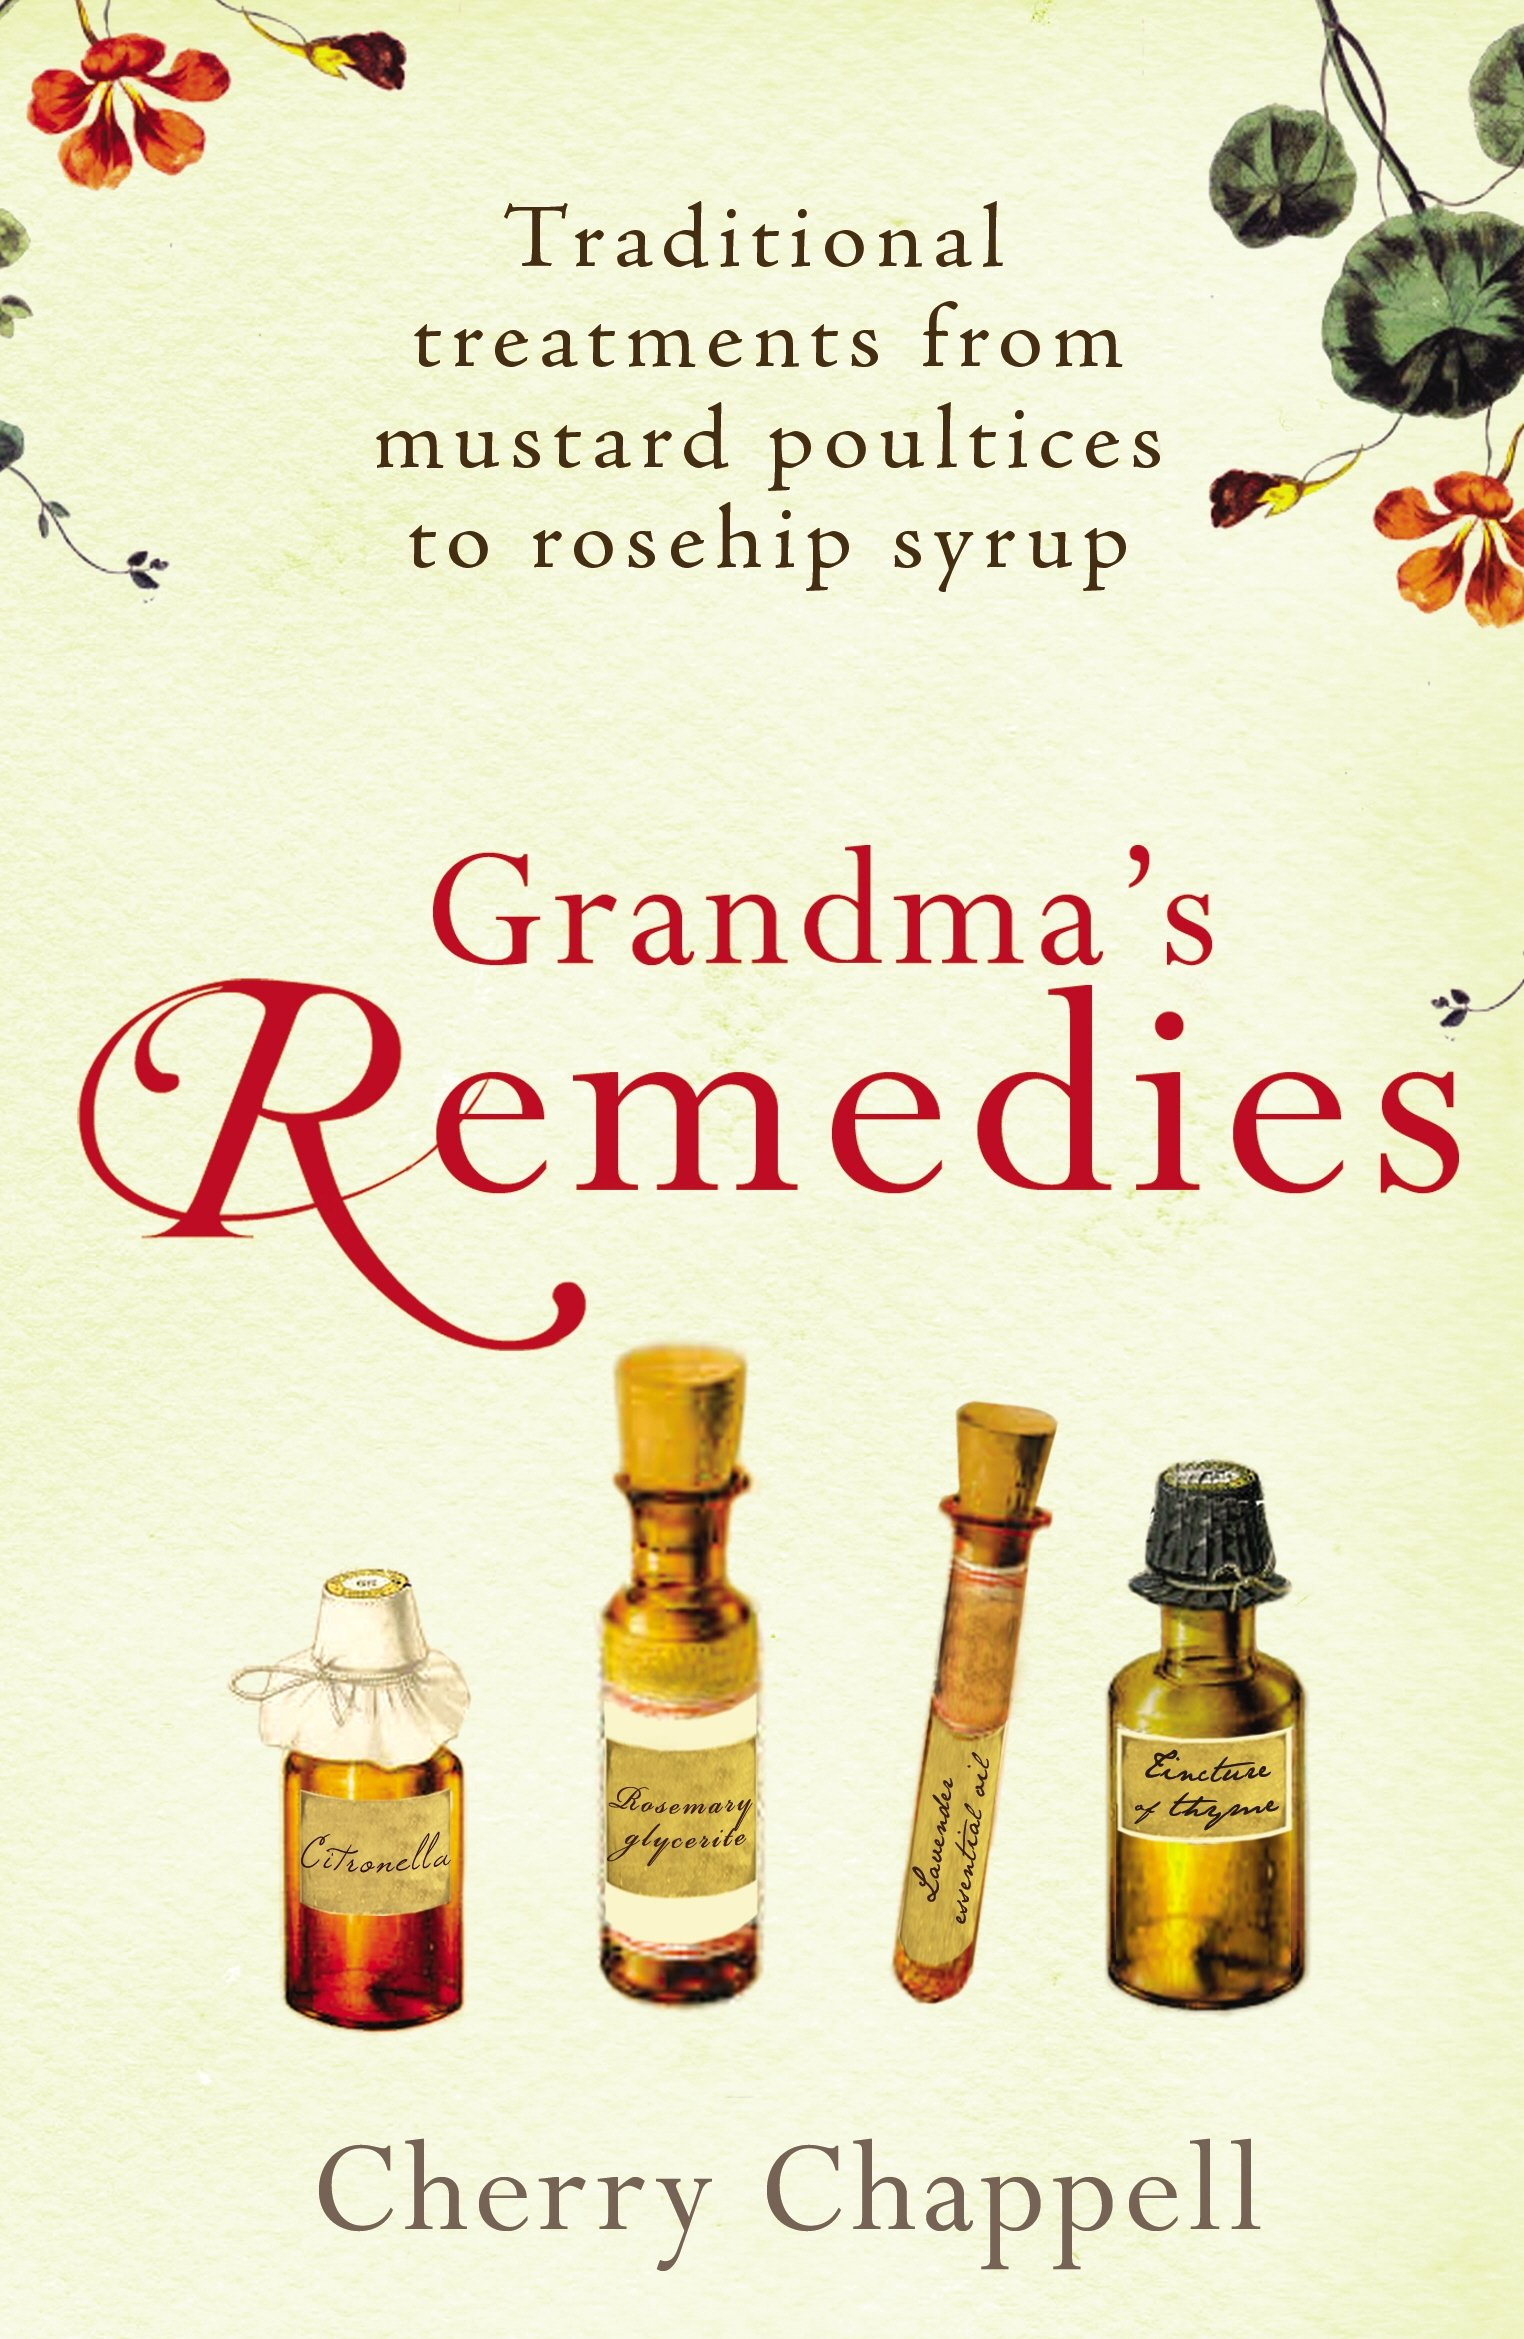 Grandma's Remedies: Traditional Treatments from Mustard Poultices to Rosehip Syrup ebook